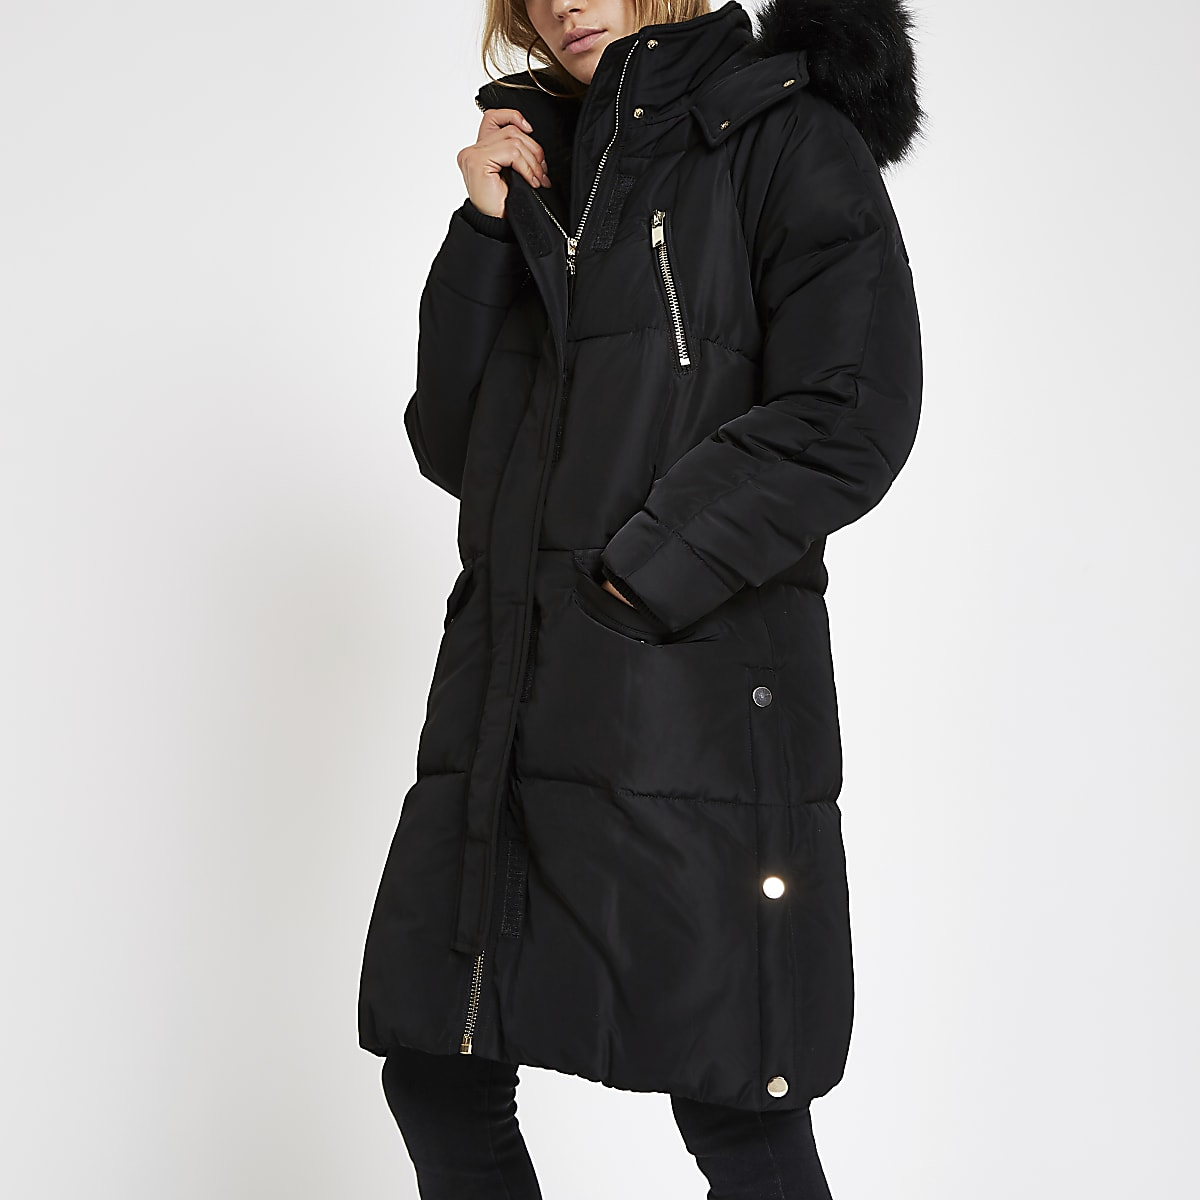 97dbf37af Black faux fur trim longline puffer jacket - Coats - Coats & Jackets ...